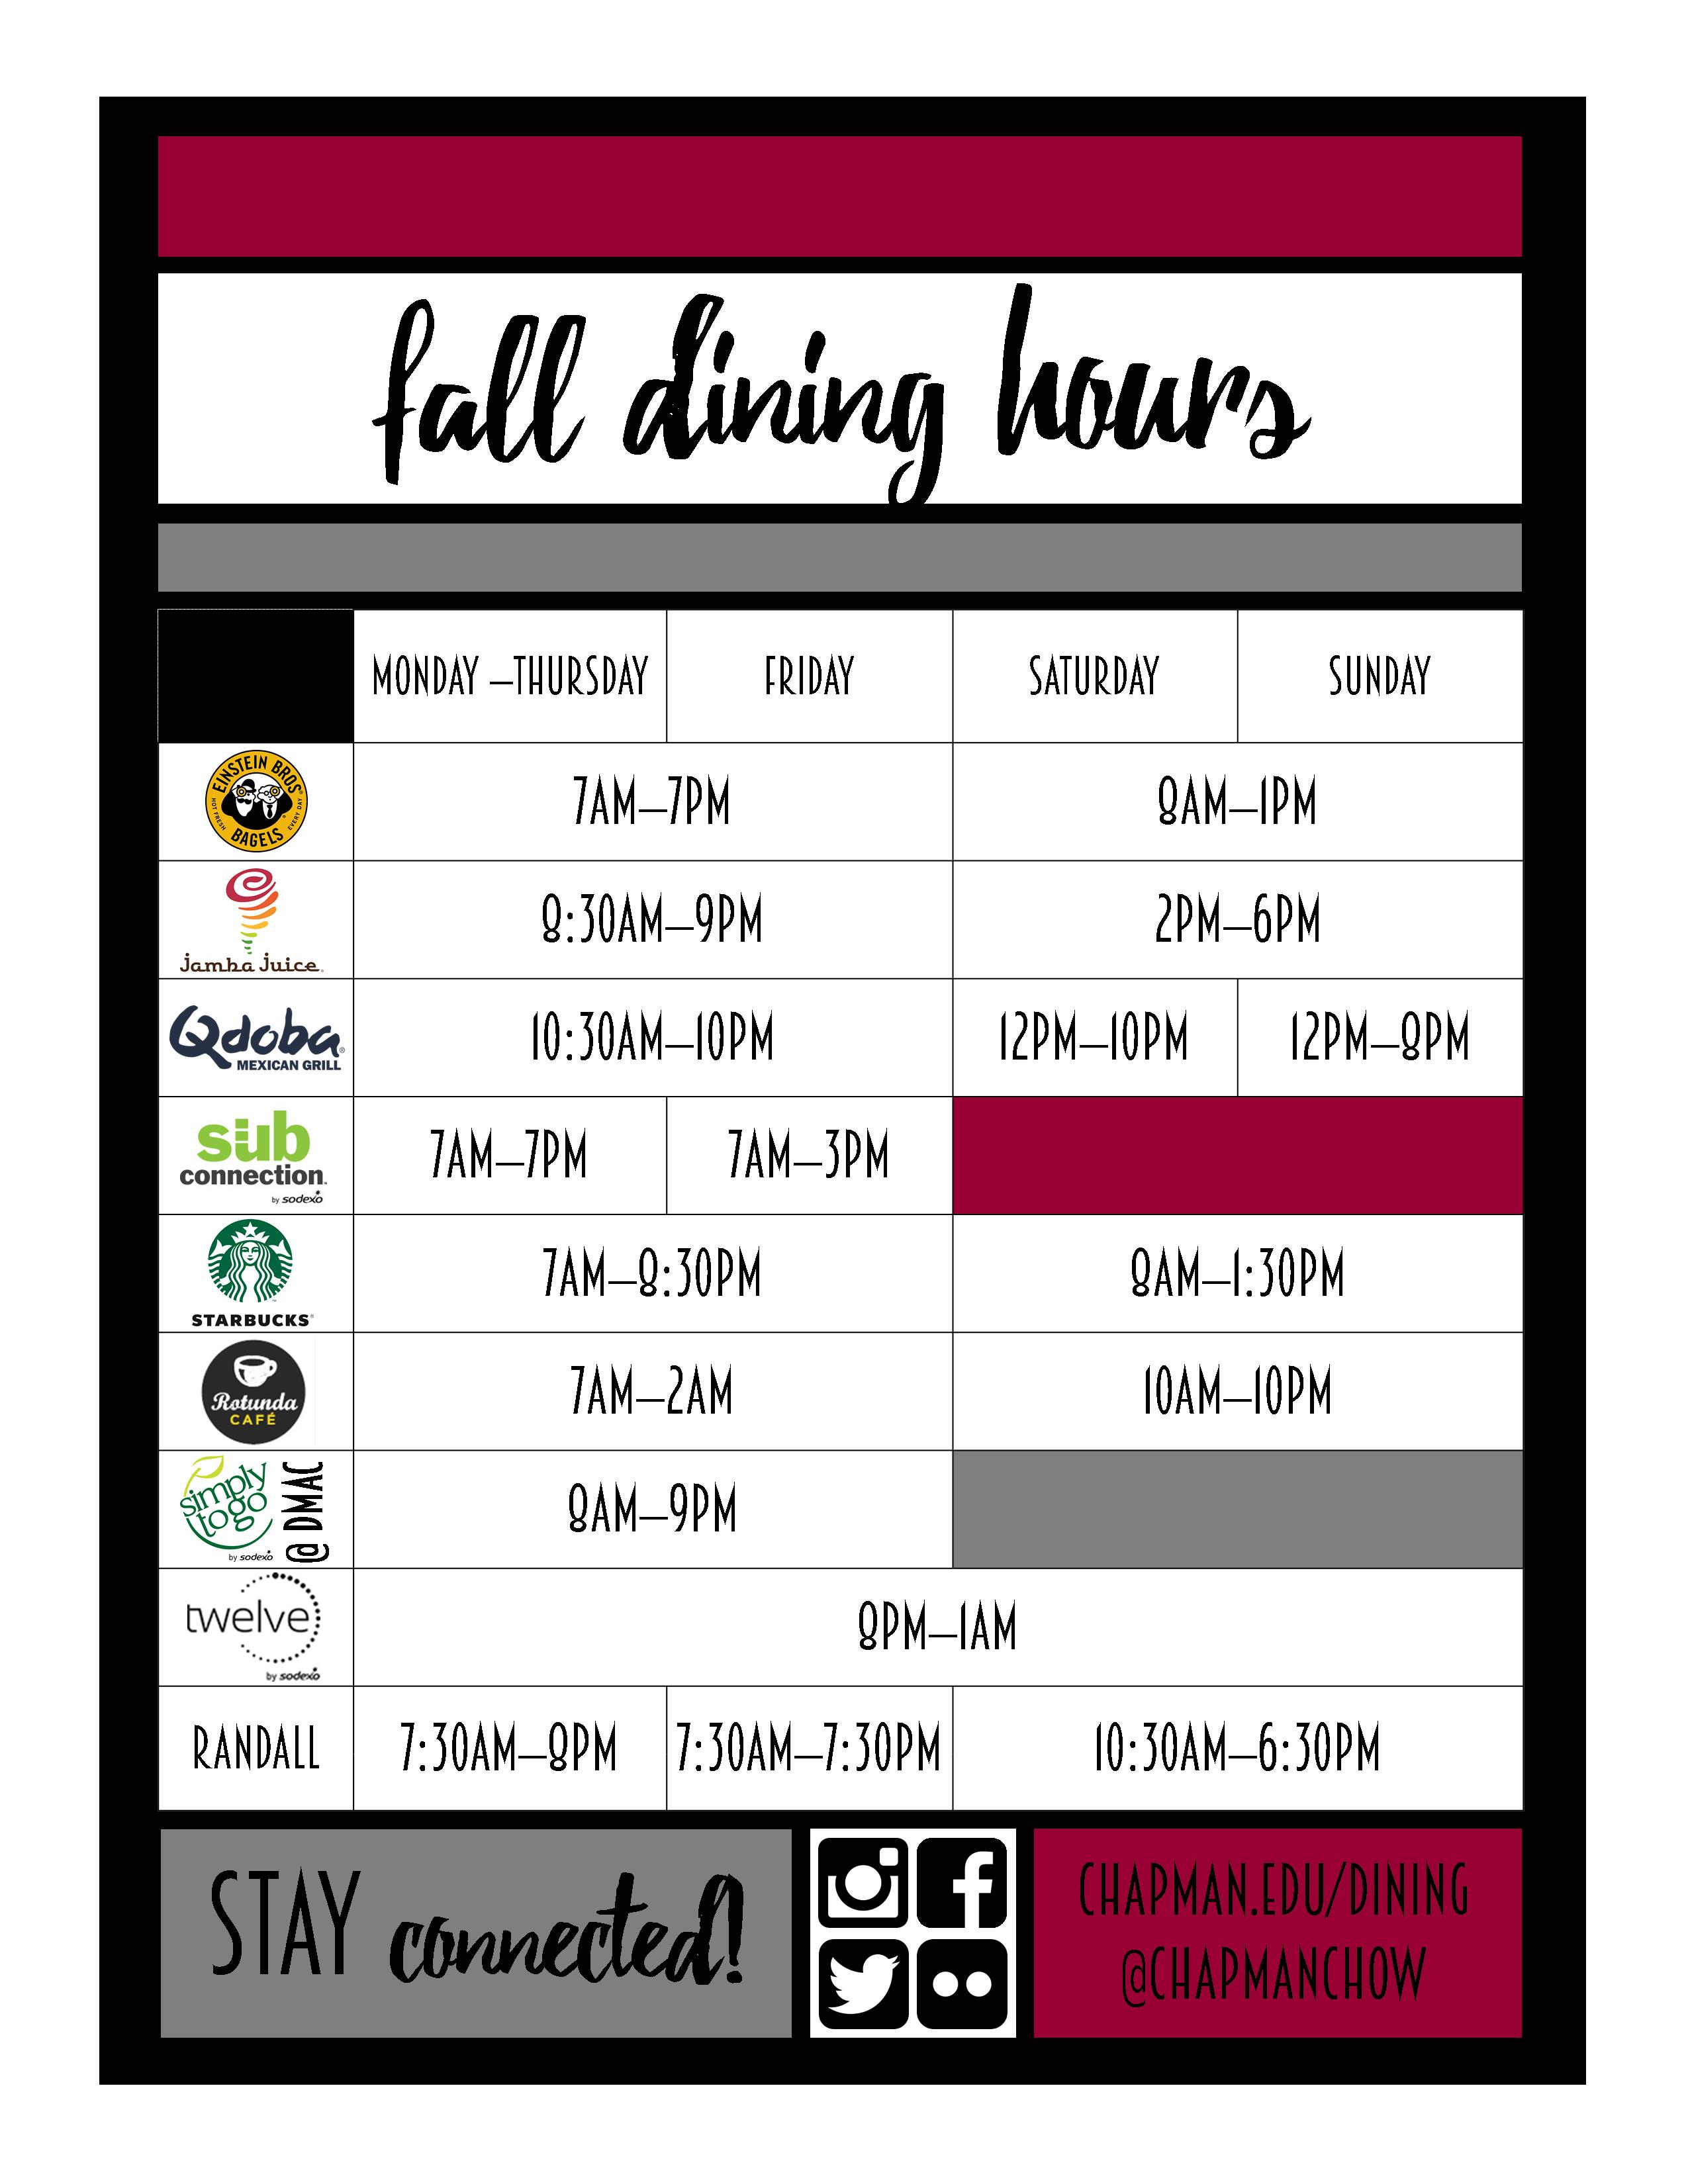 Facility Hours Student Ask Chapman University